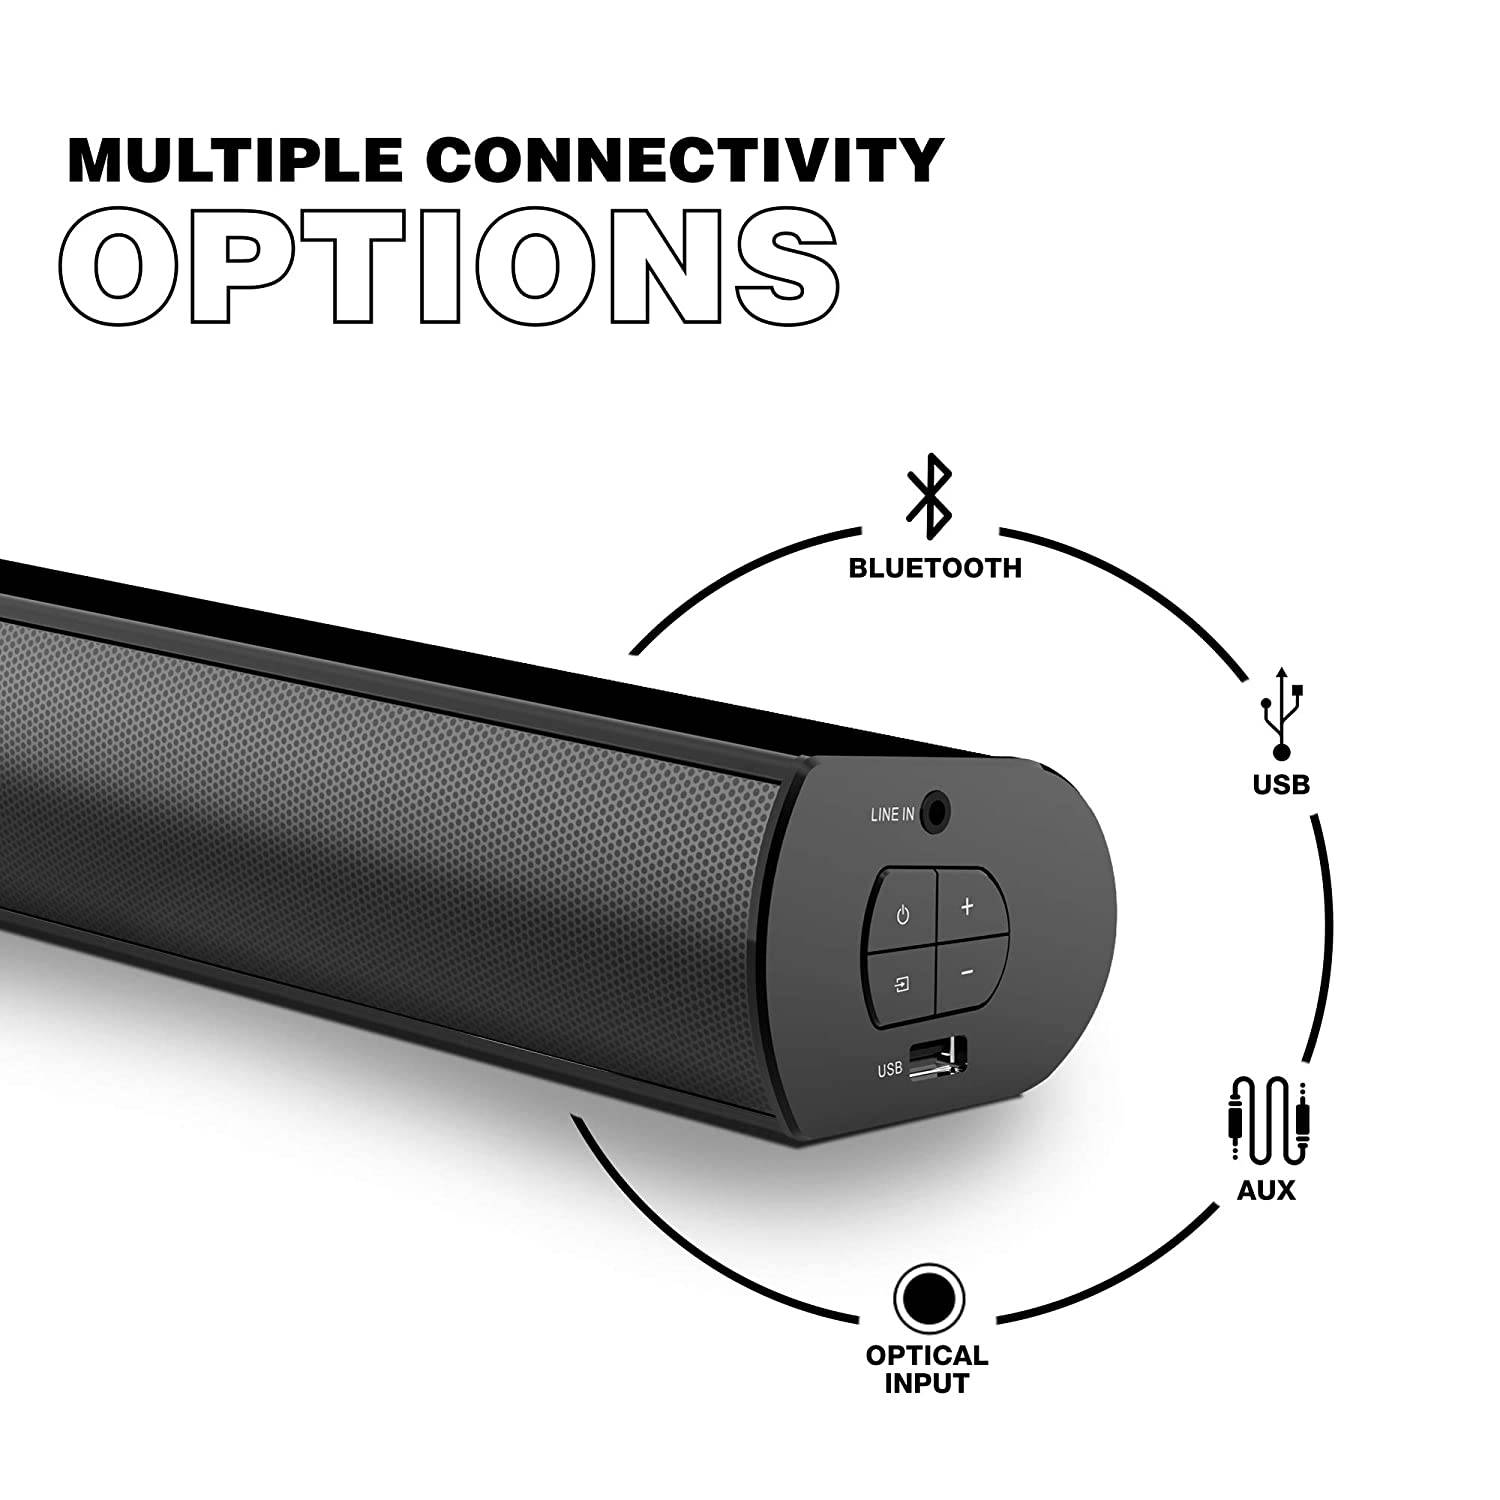 Easy to connect with Multiple Connectivity